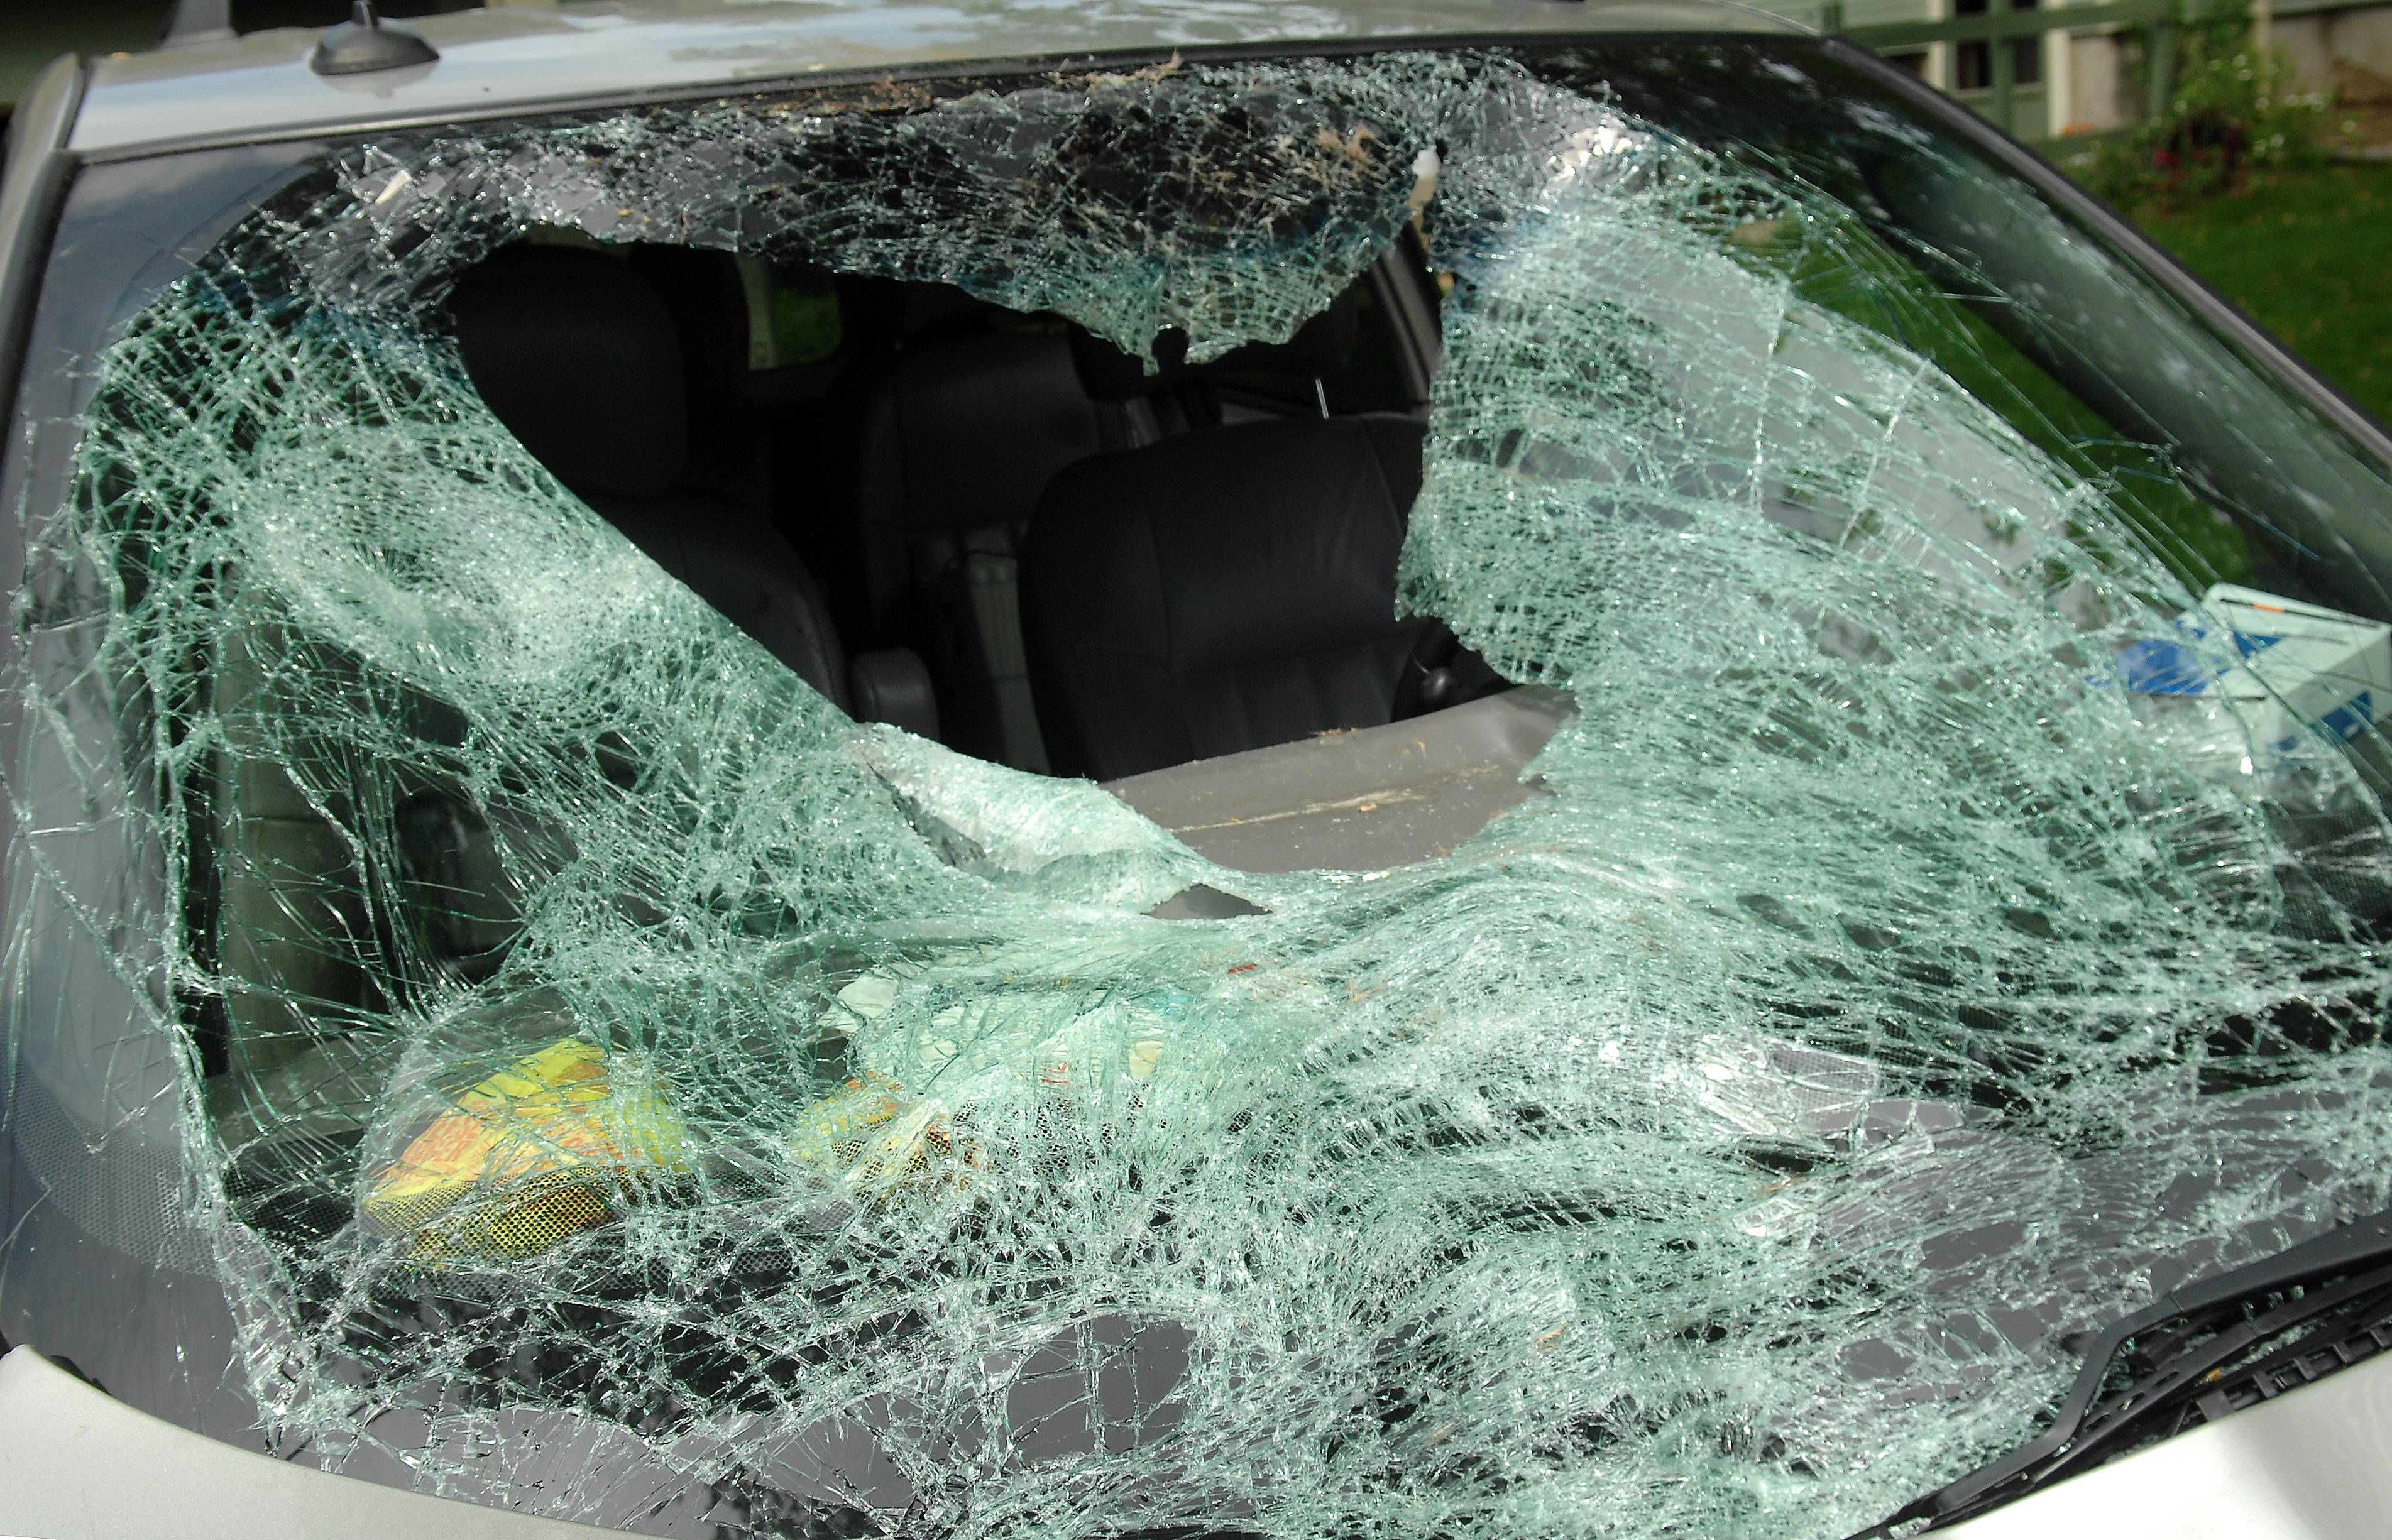 A deer plunged through the windshield of Heidi Conner's minivan Sunday afternoon as she drove on the Jame Addams Tollway. The West Dundee woman and four children riding with her escaped serious harm.